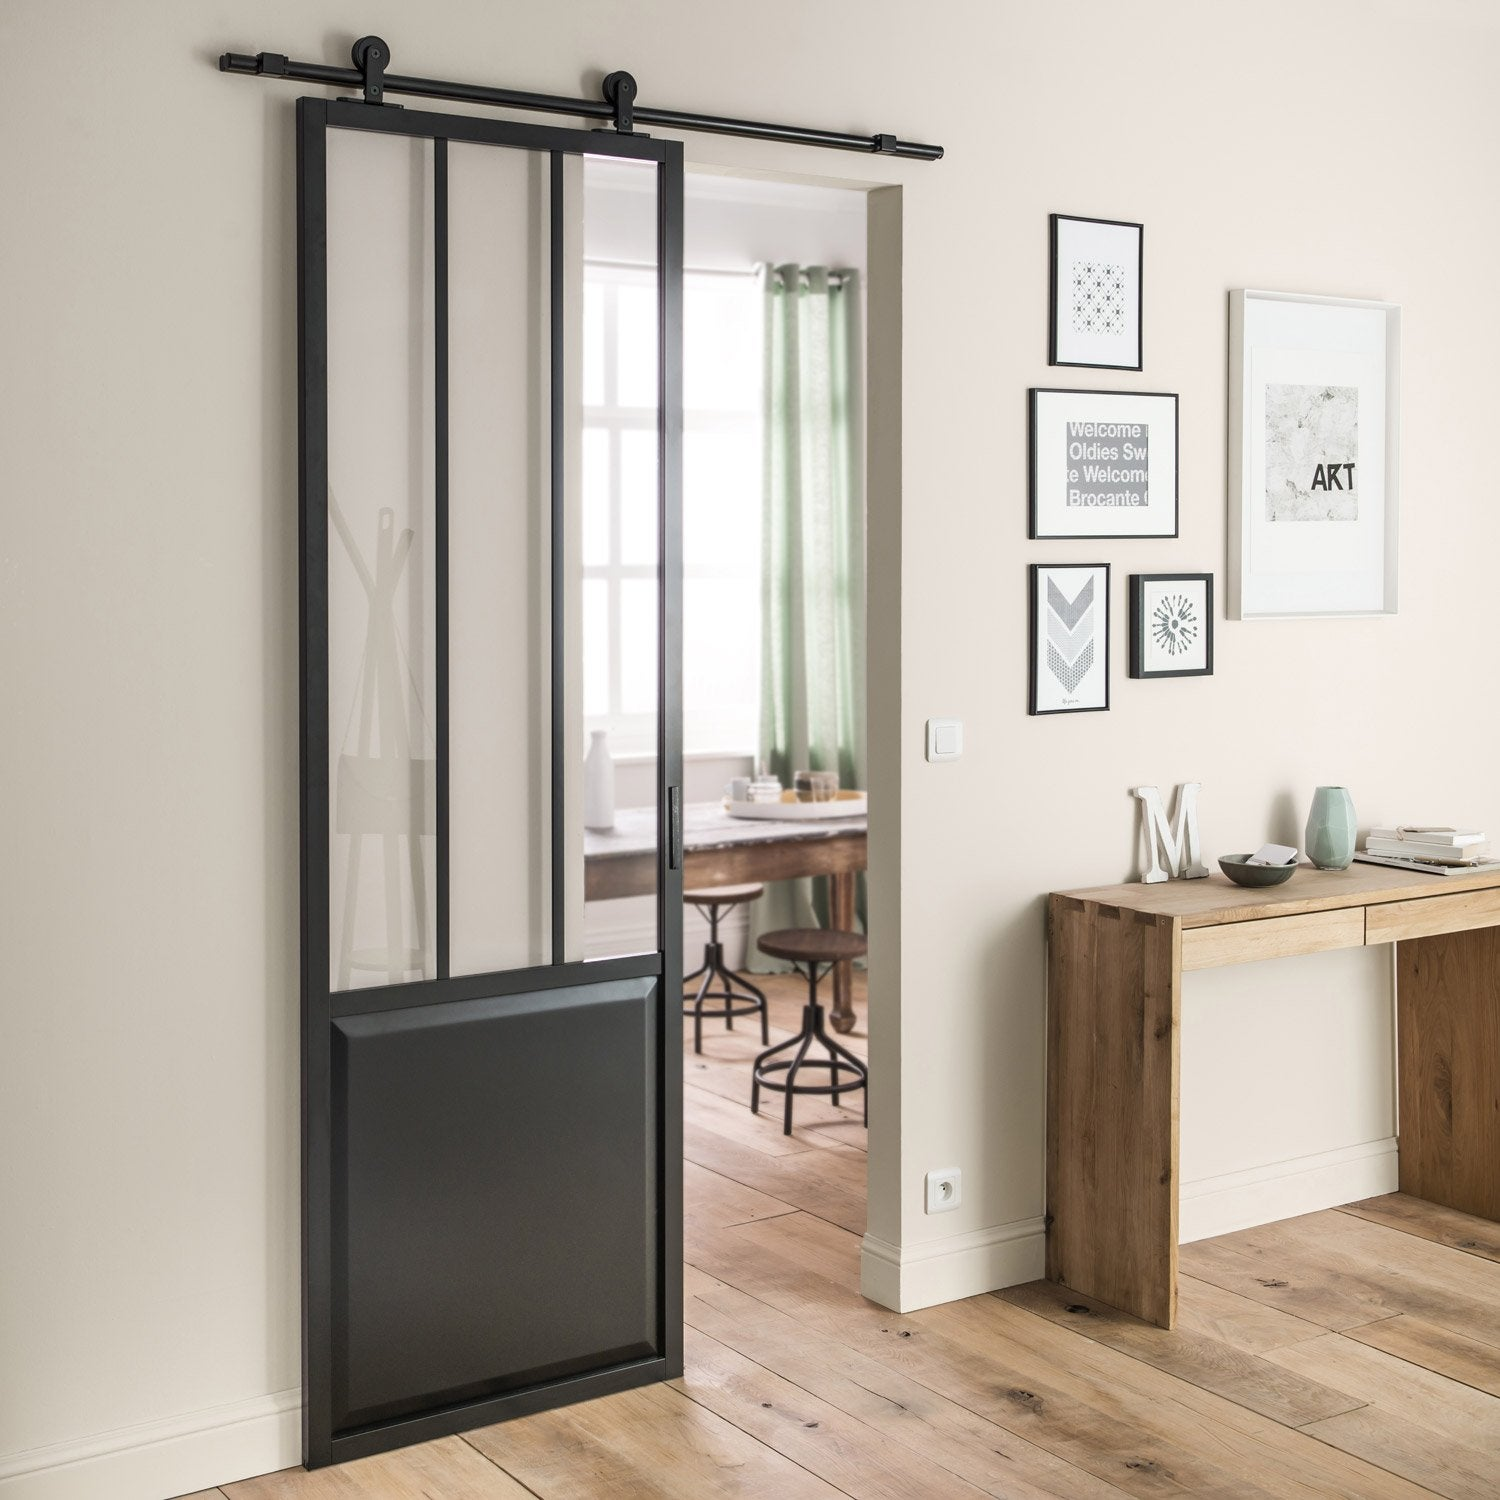 Ensemble porte coulissante atelier aluminium verre clair for Porte de garage coulissante et double porte salon